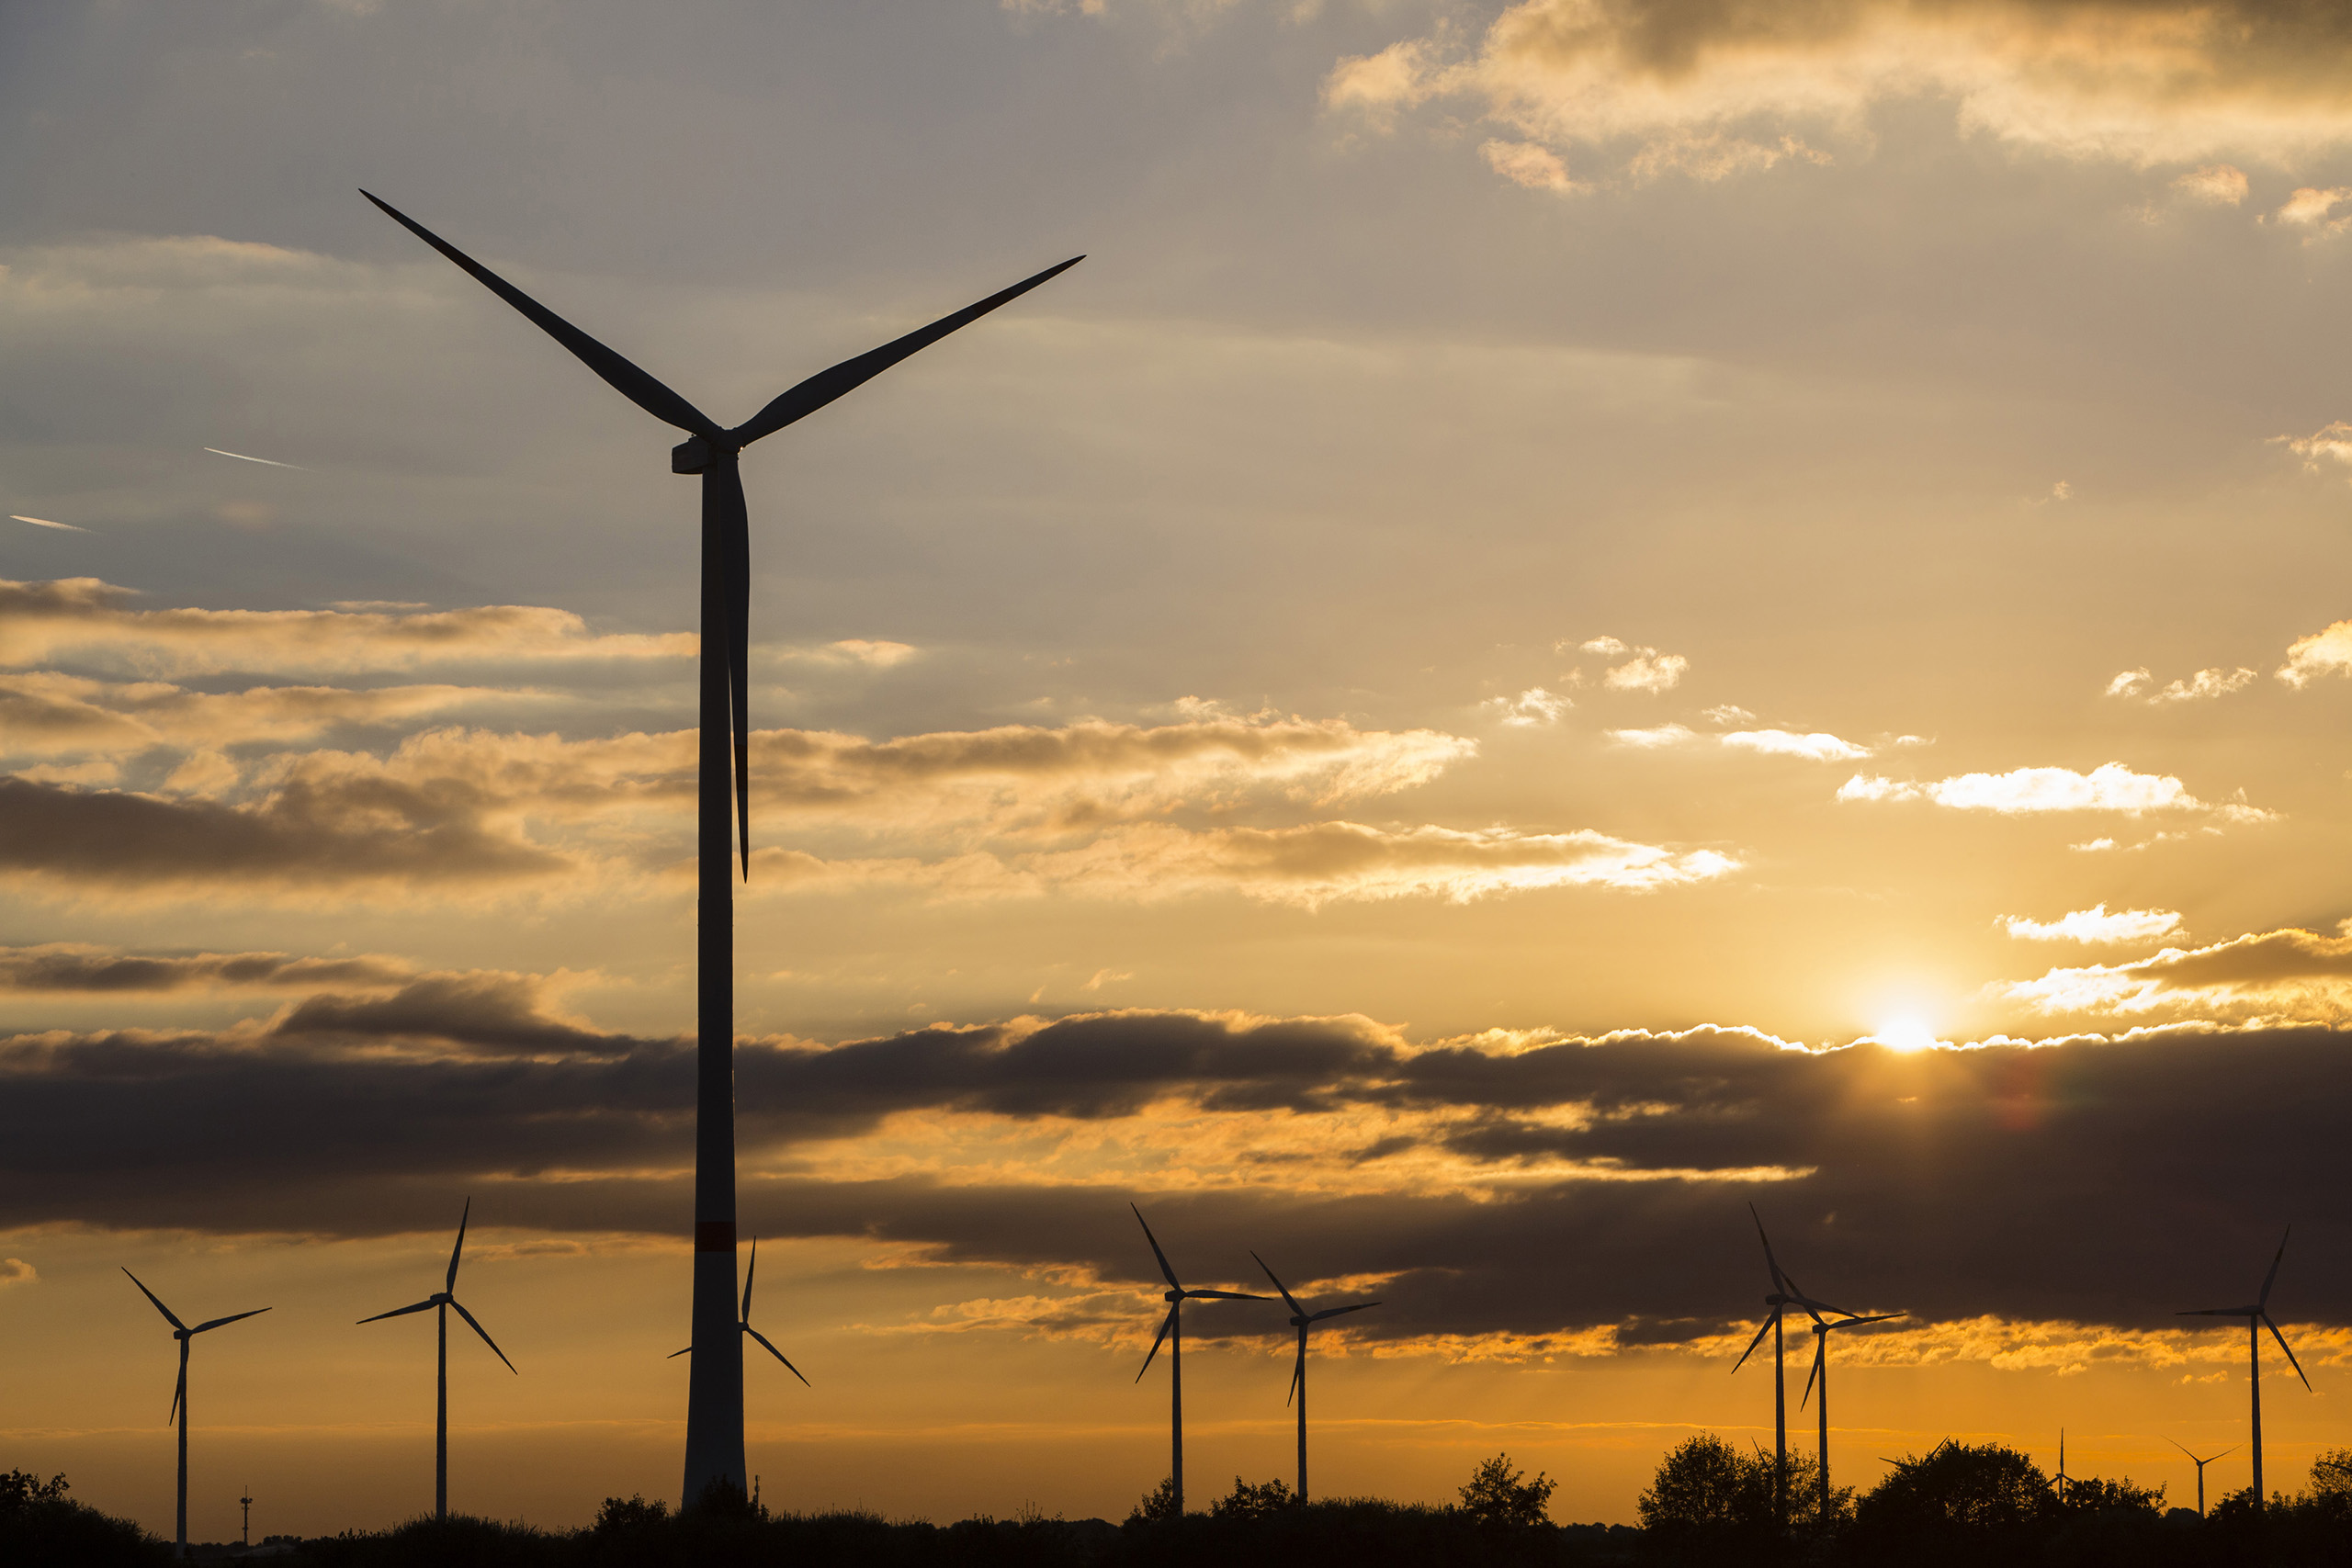 Wind turbines operate on the Innogy SE wind farm as the sunsets in Bedburg, Germany, on Oct. 4, 2016.